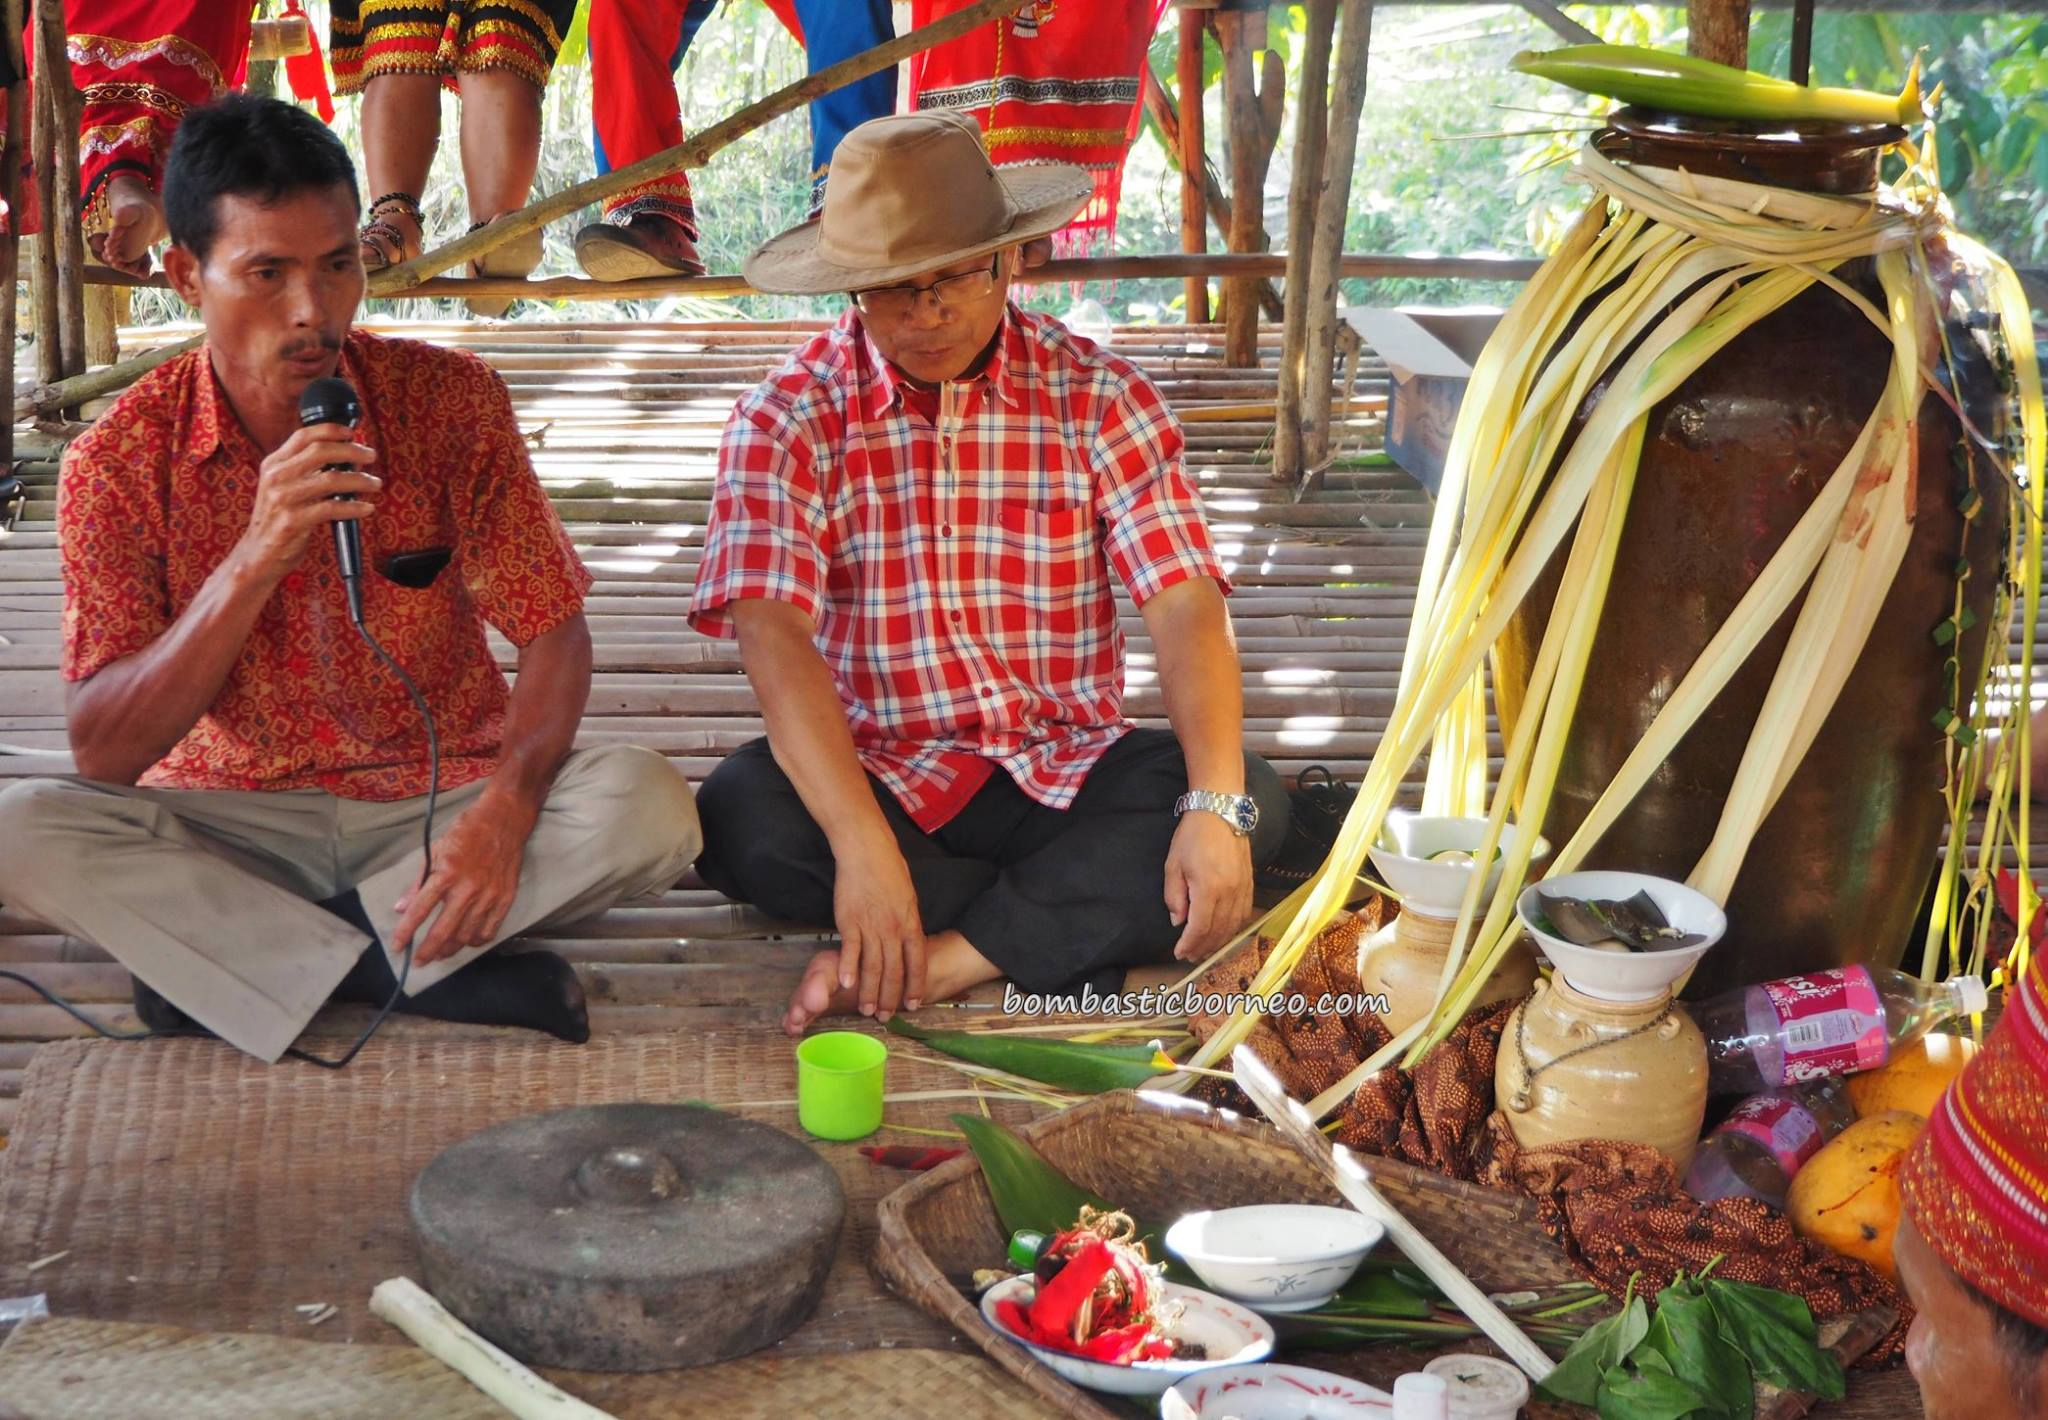 Gawai Harvest Festival, backpackers, destination, Bengkayang, Indonesia, Desa Tangguh, Dusun Betung, Kampung Gumbang, dayak bidayuh, tribe, event, Tourism, tourist attraction, travel guide, 西加里曼丹, 原著民丰收节日